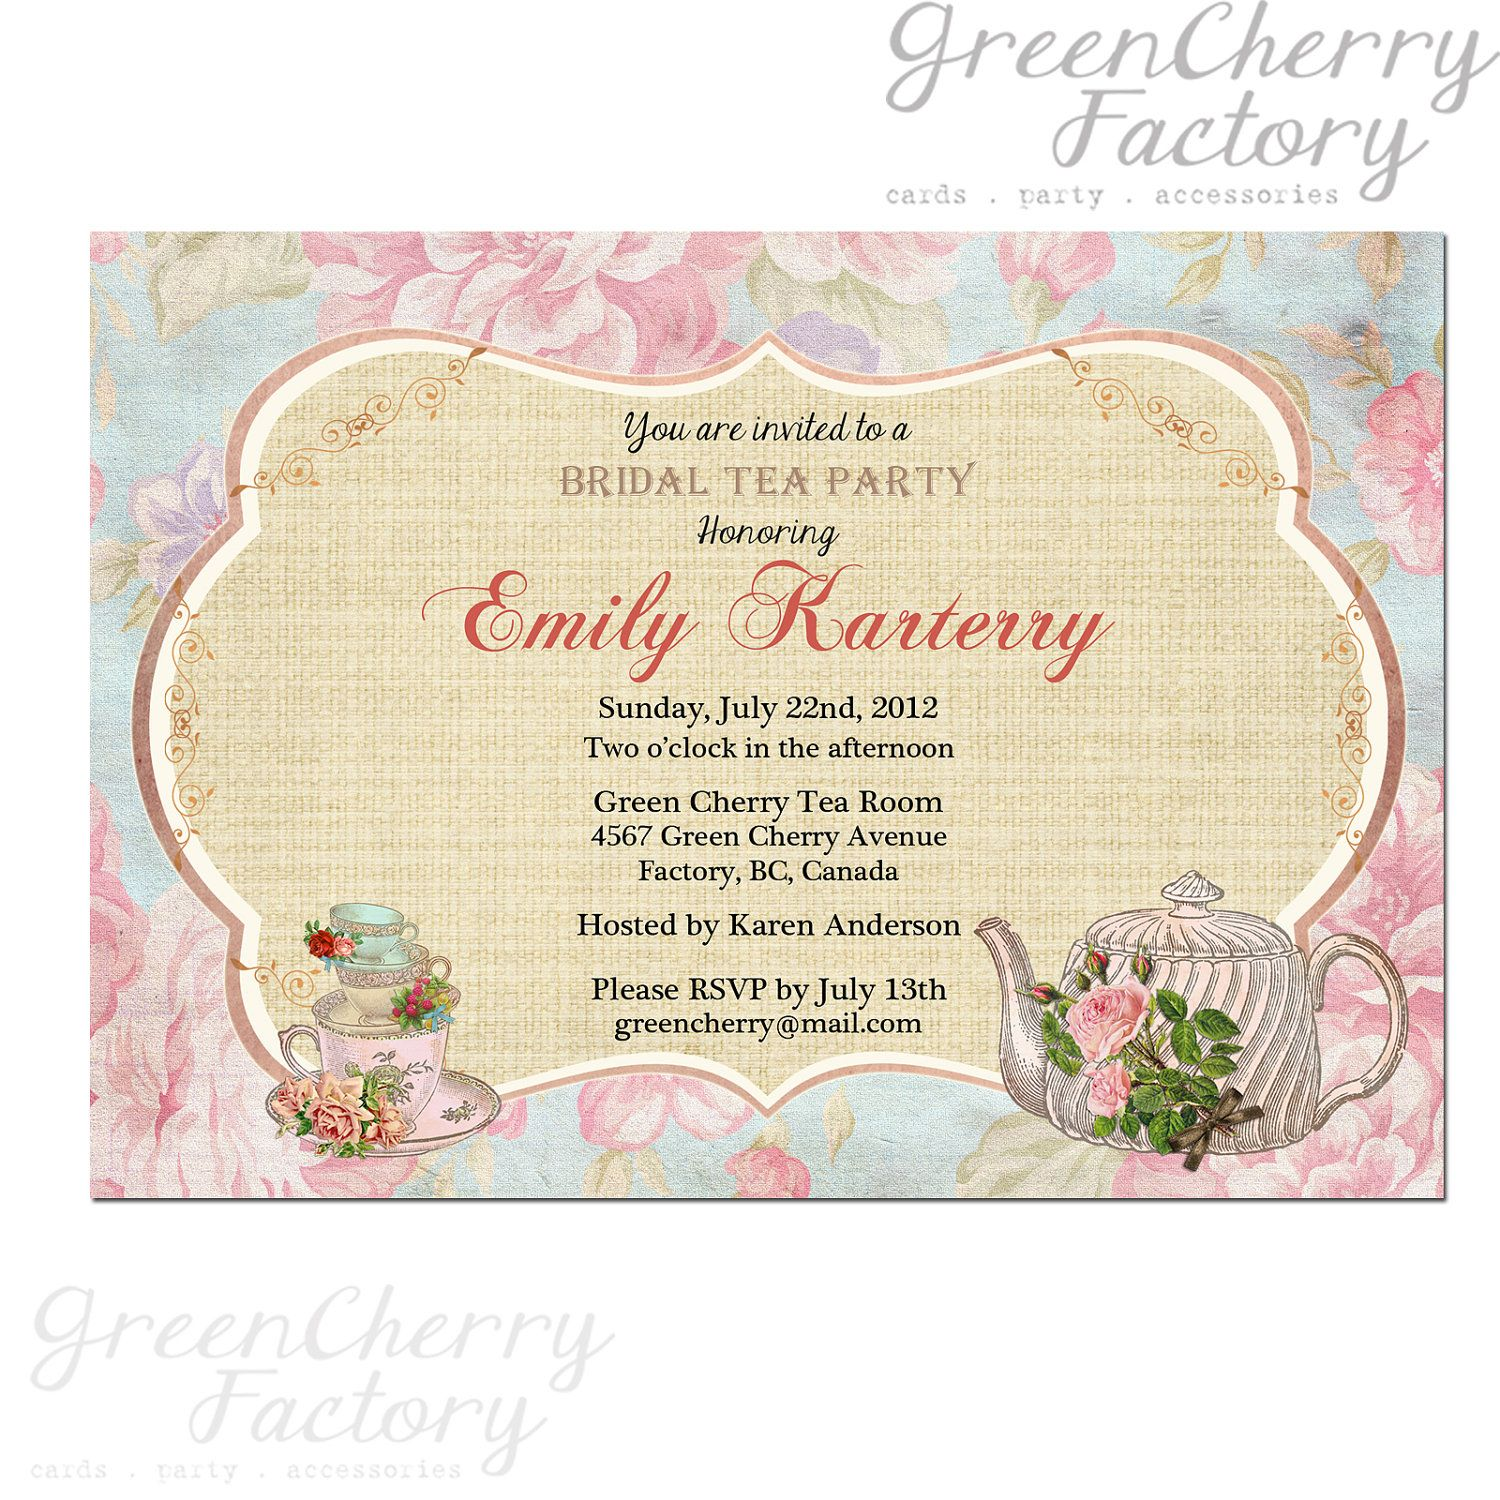 Floralteapartyinvitationbridalteabygreencherryfactory$ Mesmerizing Kitchen  Party Invitation Cards Design Design Inspiration